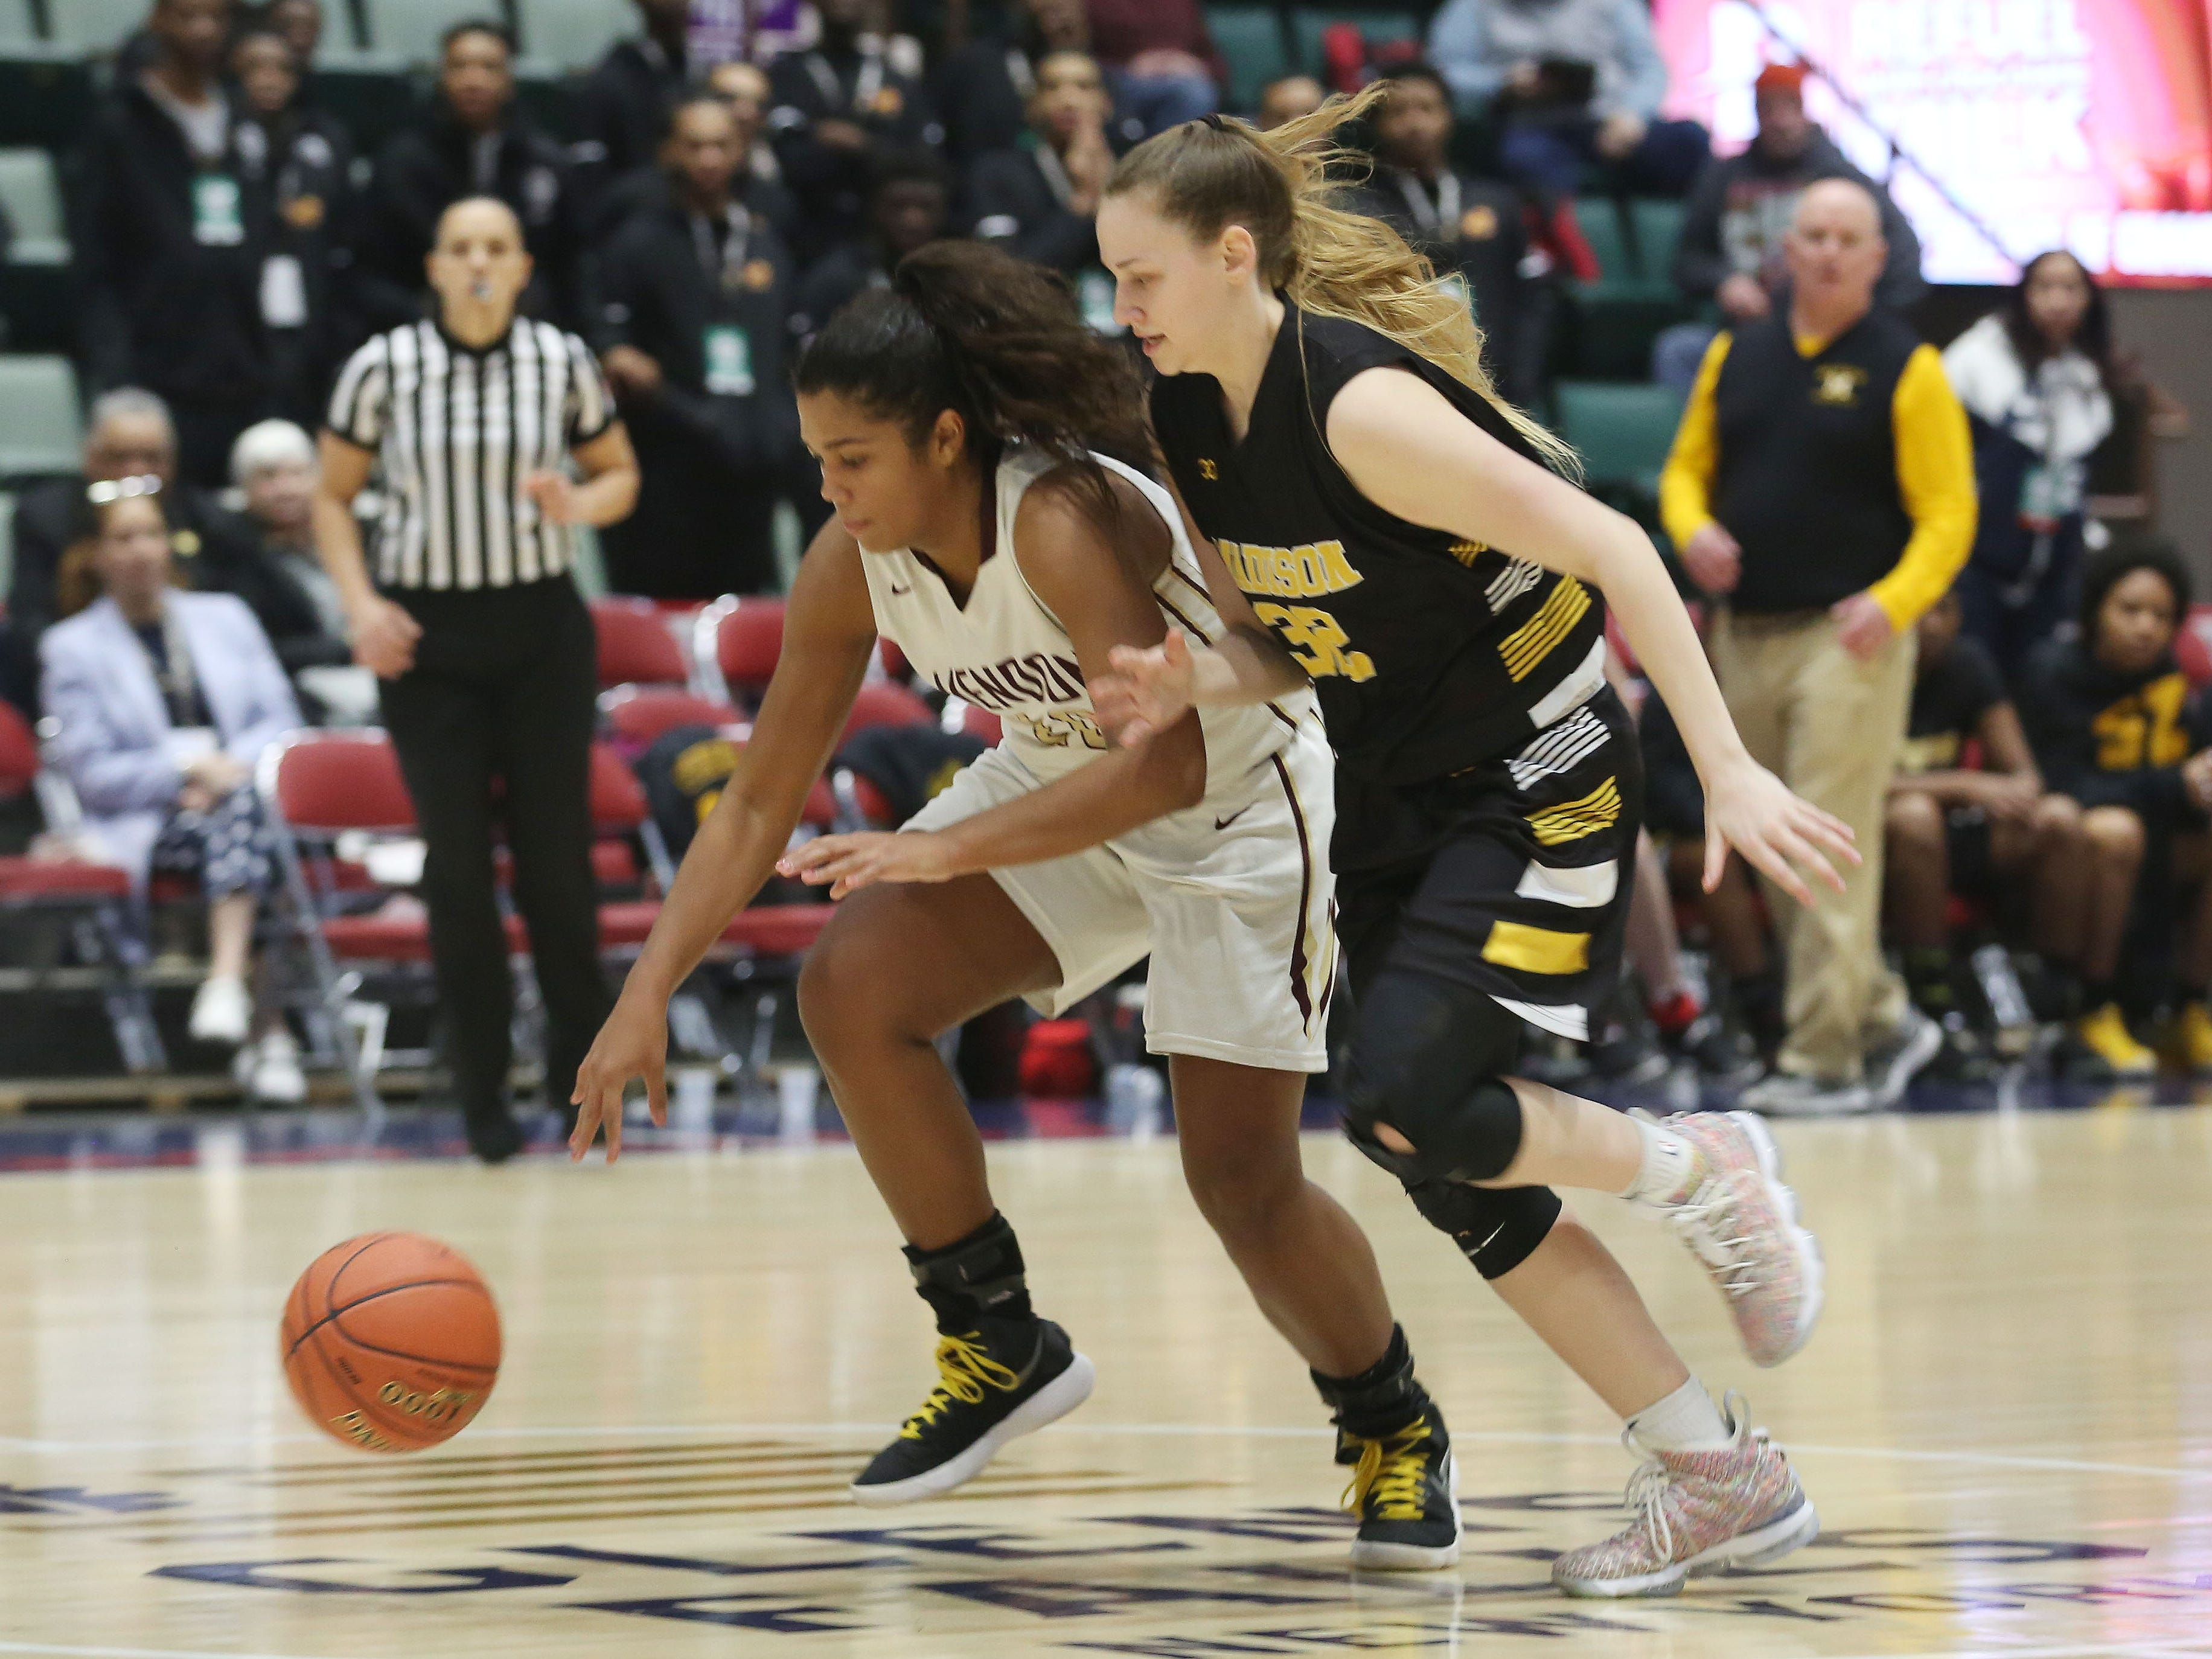 Pittsford Mendon's Lexi Green battles for a loose ball against James Madison during the girls Class A semifinal in the Federation Tournament of Champions at the Cool Insuring Arena in Glens Falls March 22, 2019. Mendon won the game, 49-43